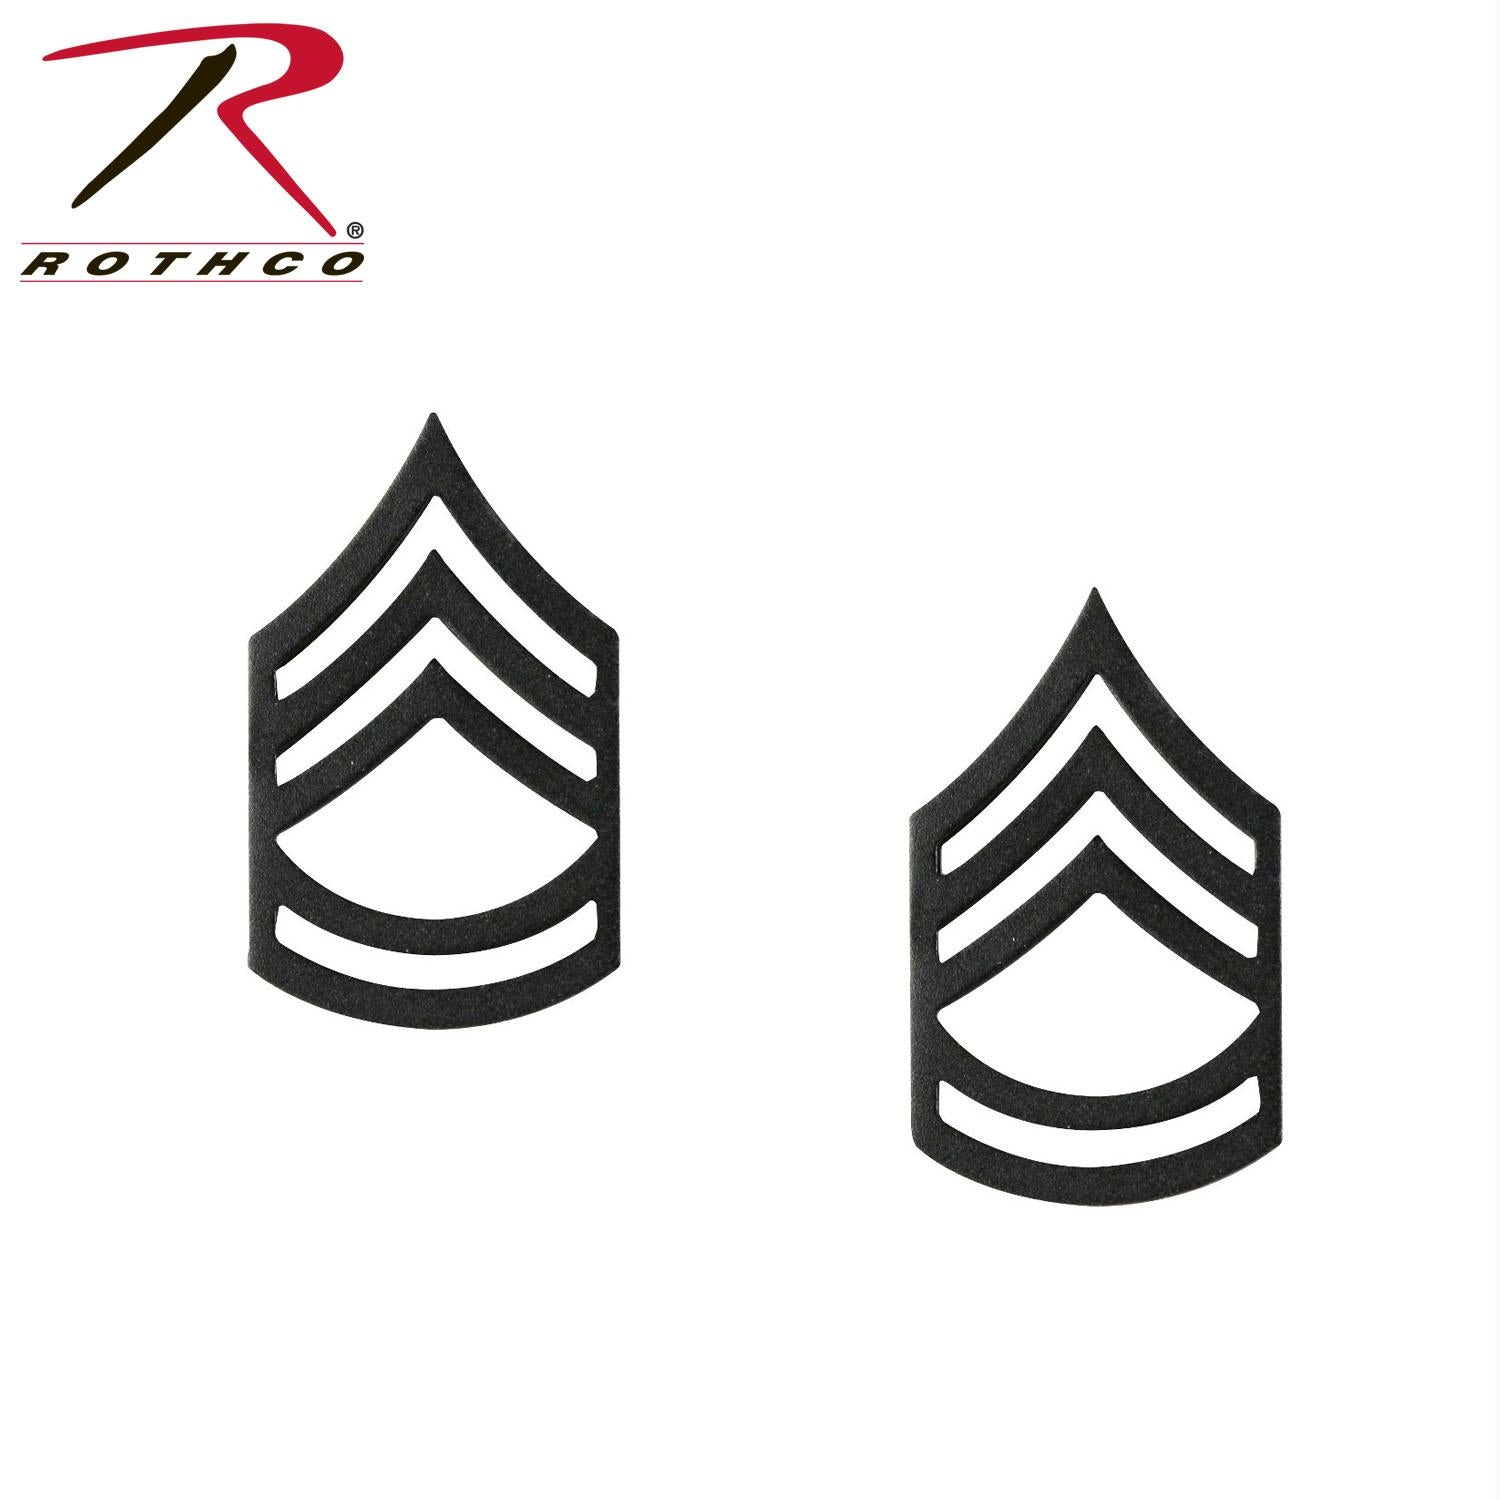 Rothco Sergeant First Class Polished Insignia Pin